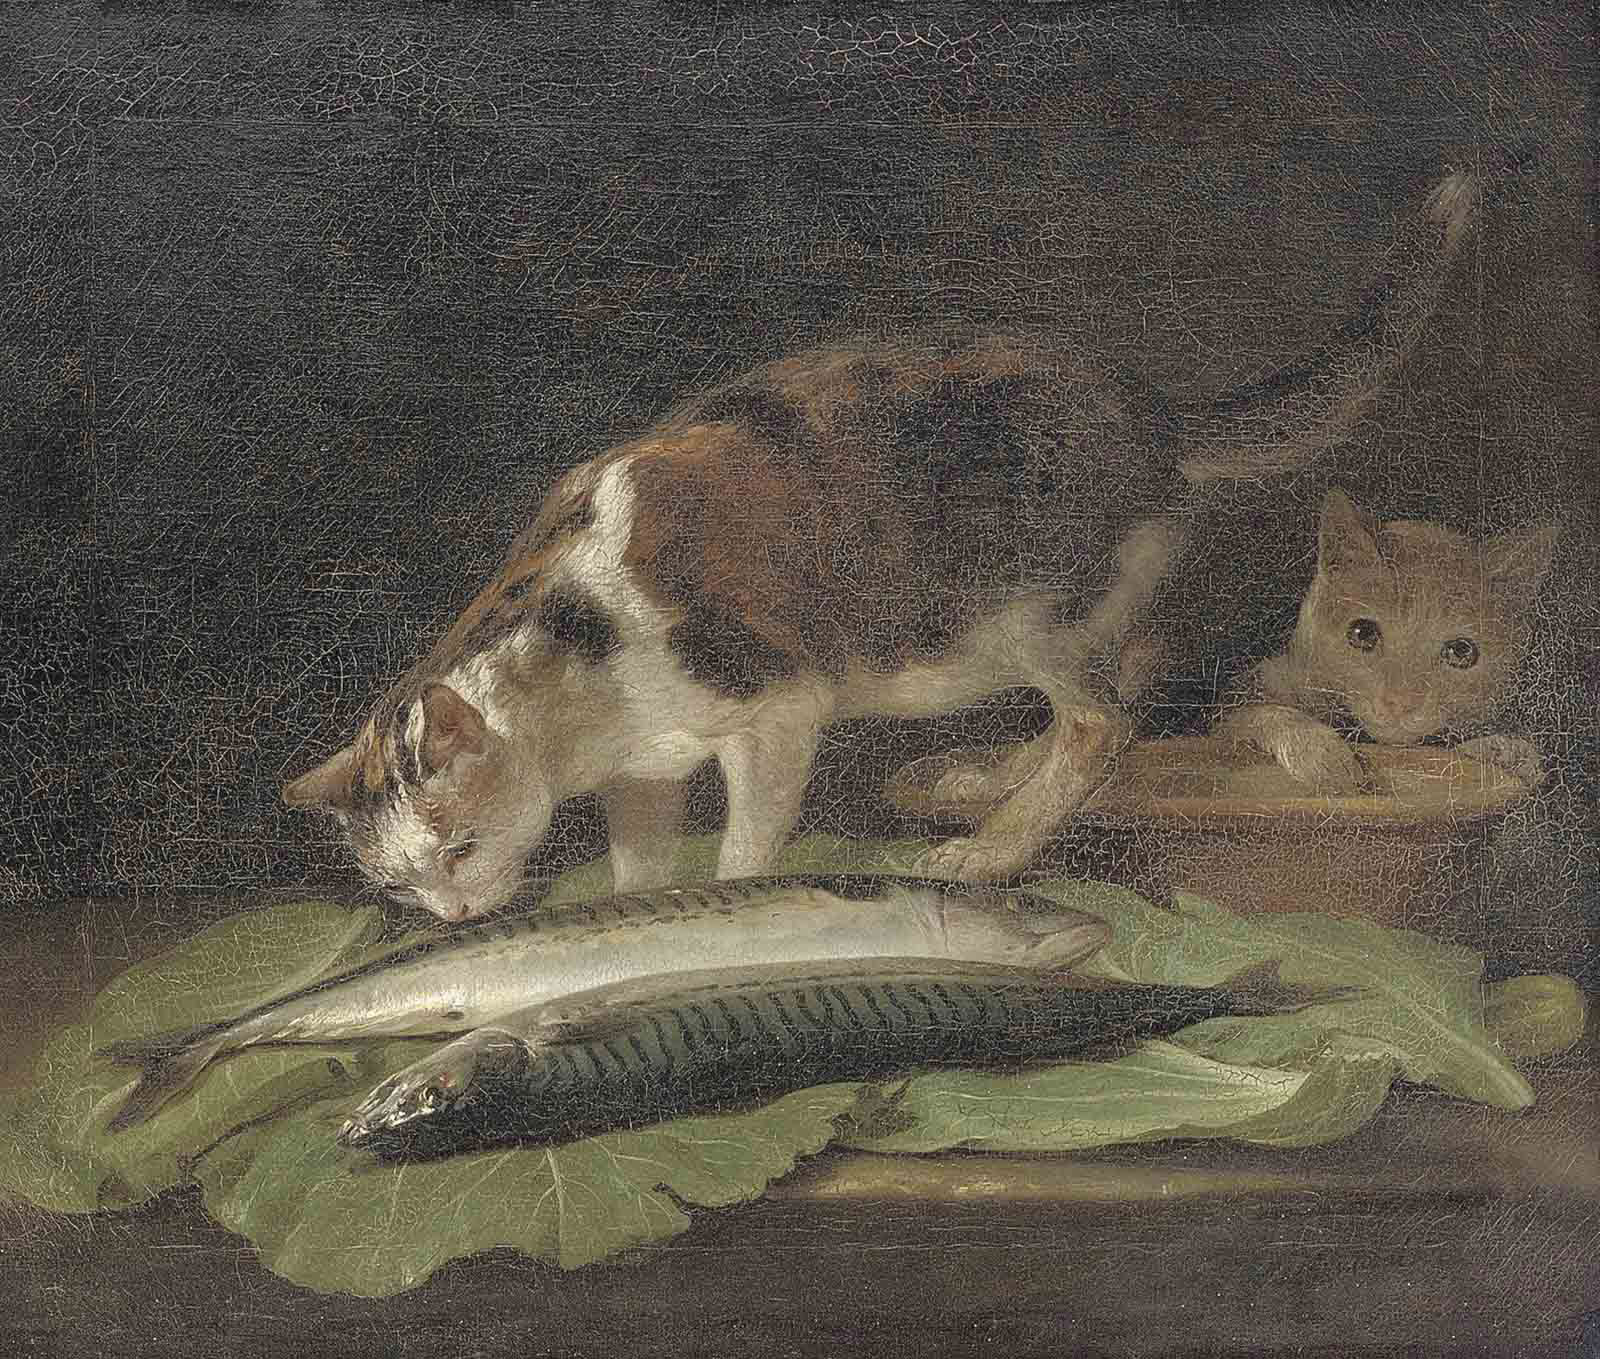 Two cats on a table with an earthenware bowl and two fish